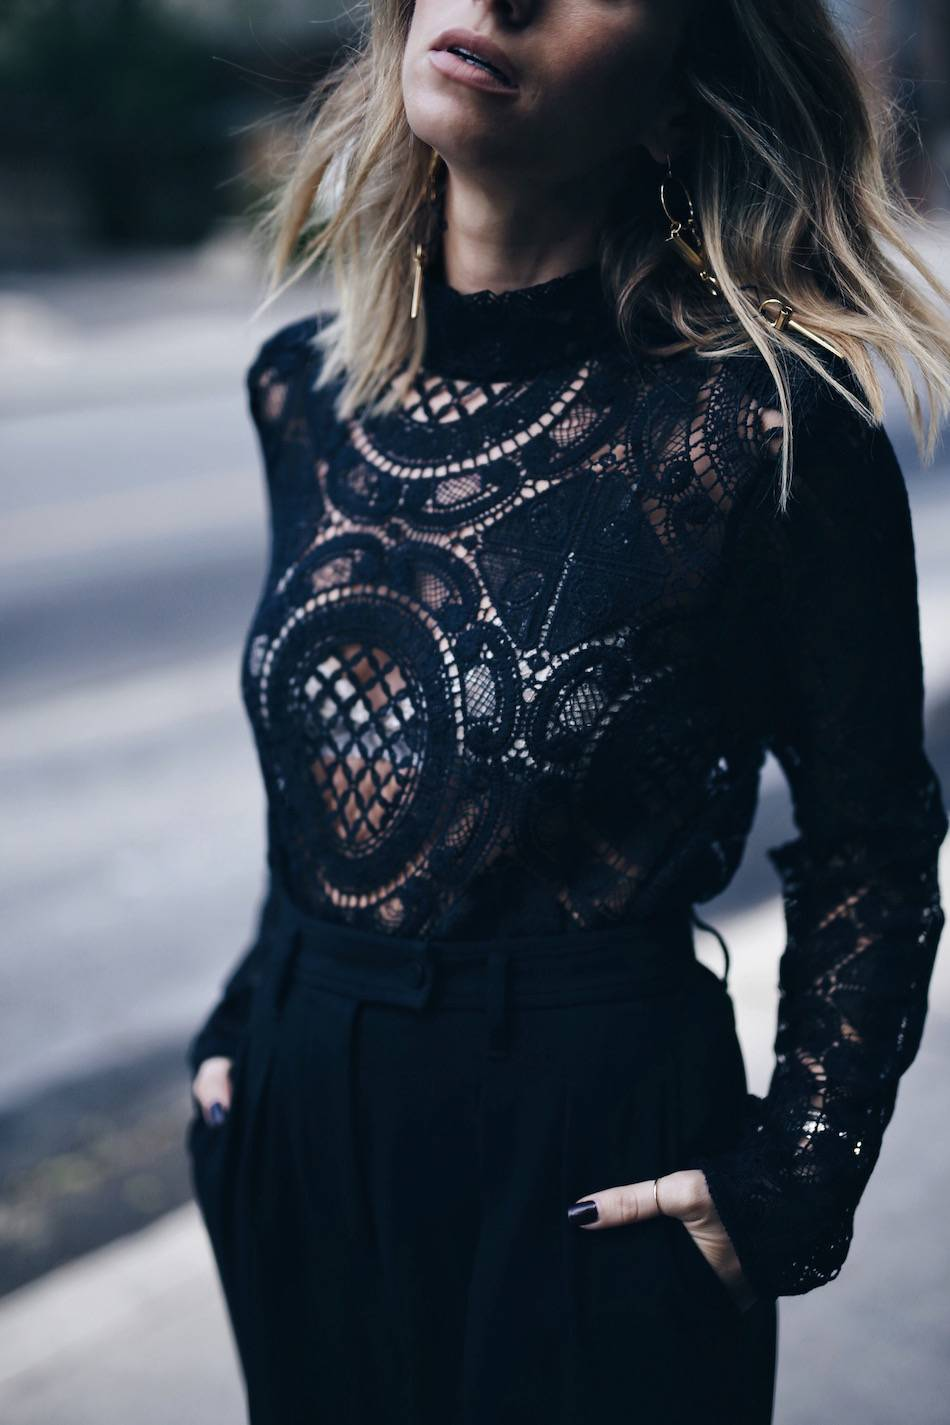 black lace top, statement earrings